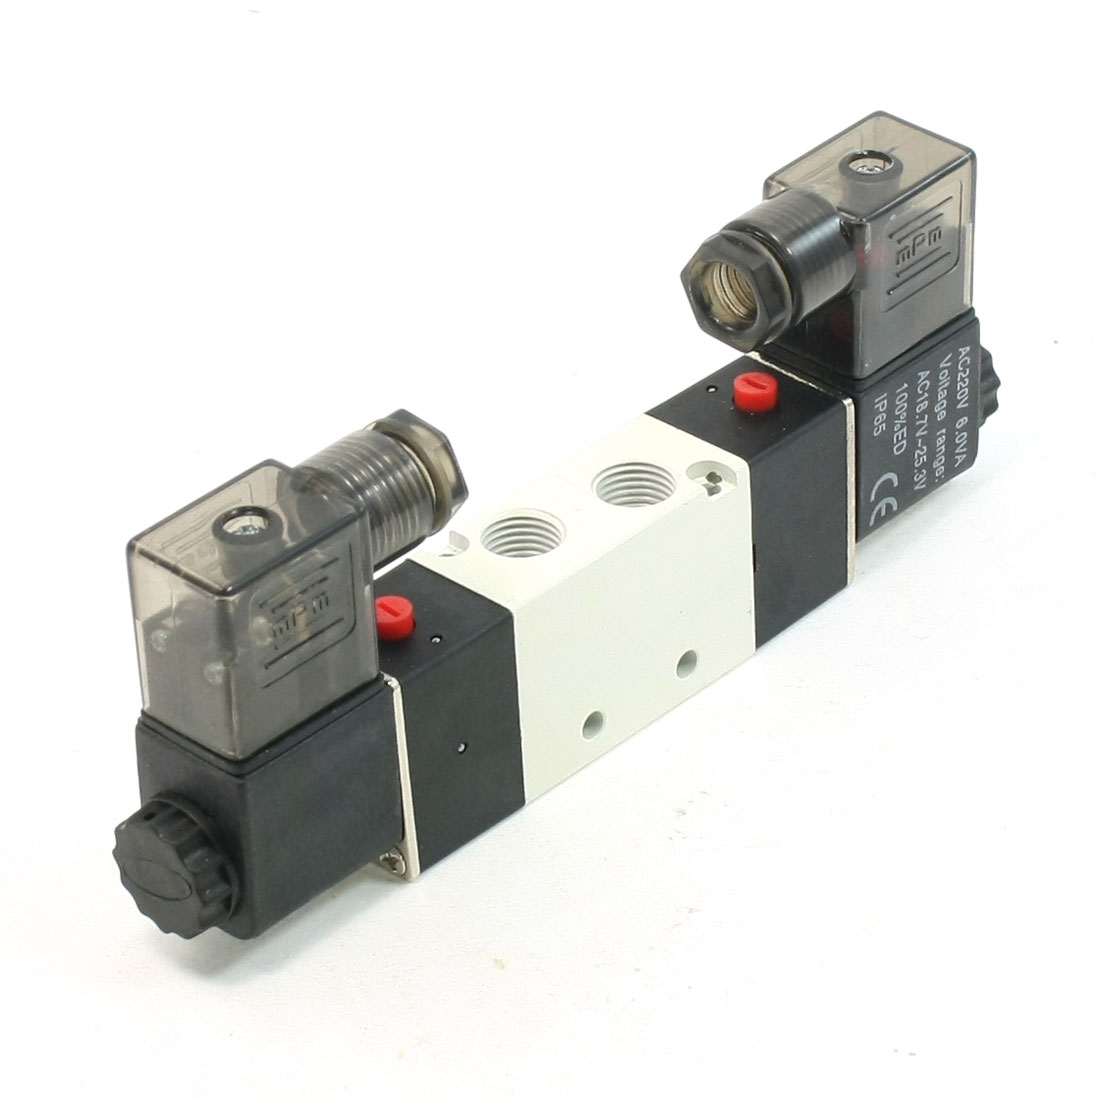 AC 220V 6.0VA Single Coil 2 Position 5 Ports Electric Solenoid Valve